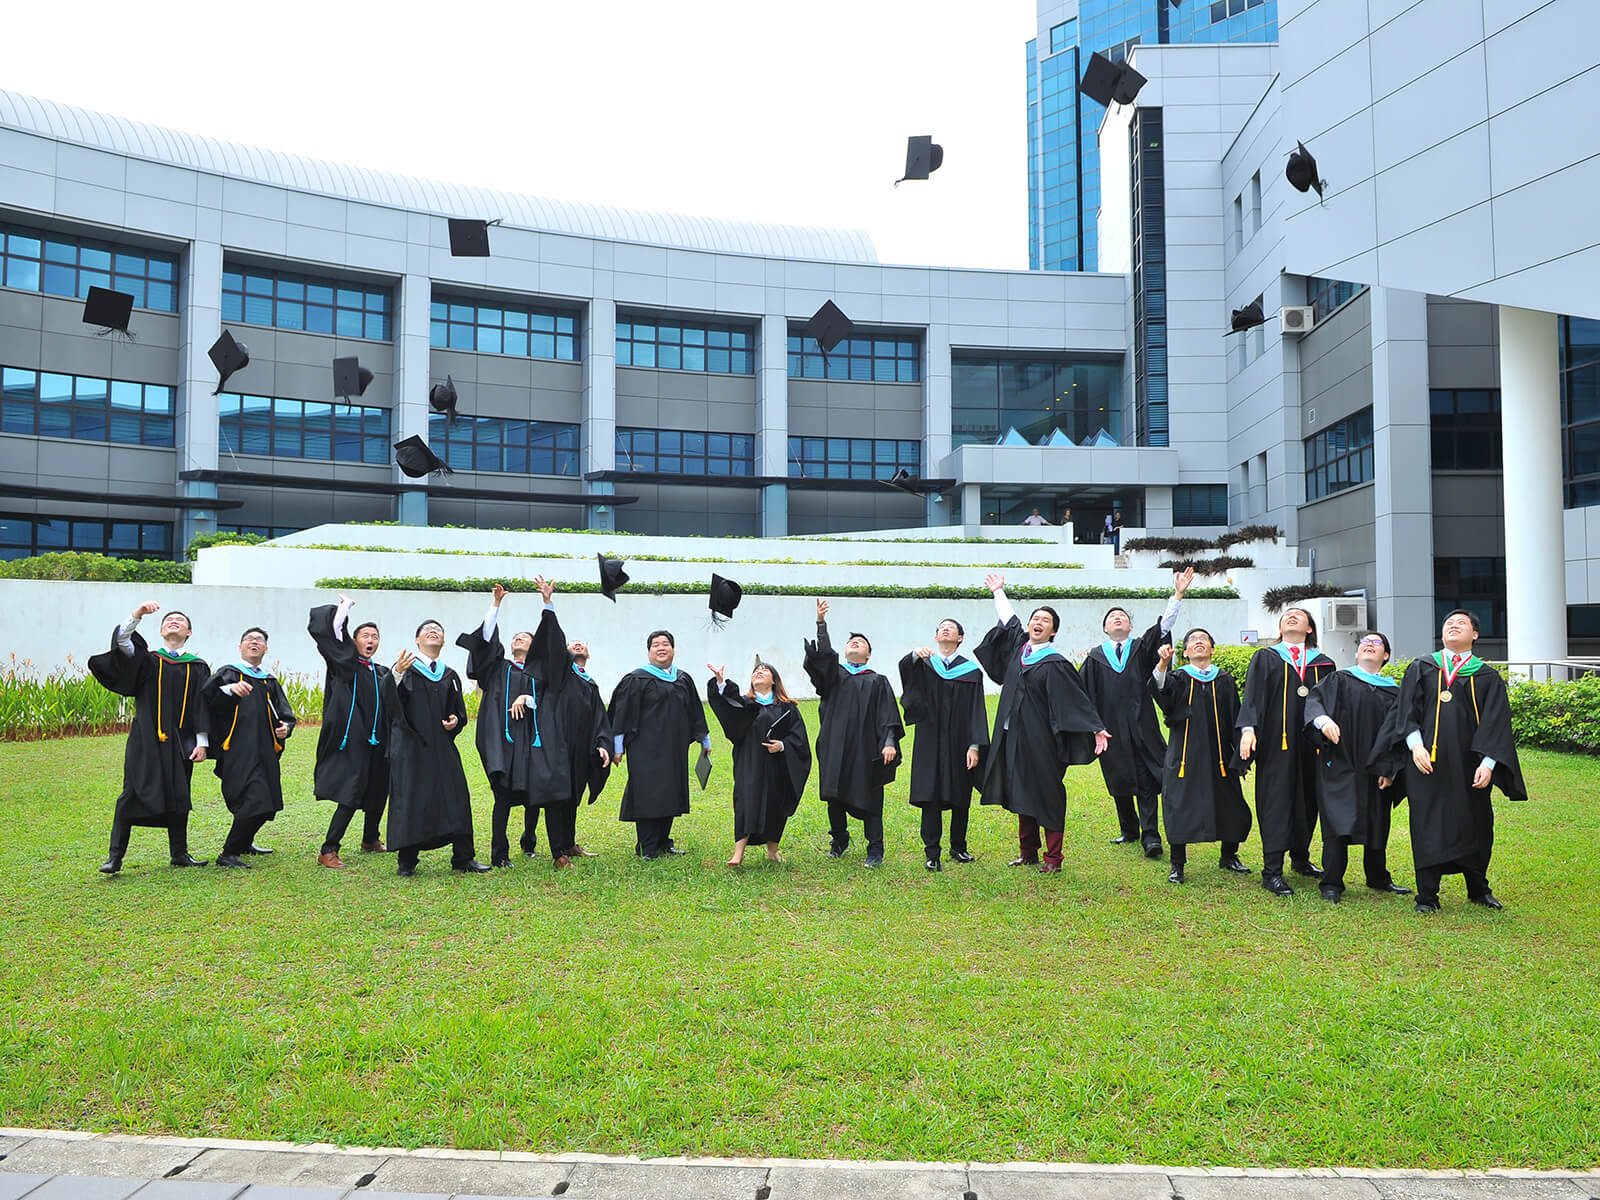 Several lined-up graduates throw their graduation caps into the air while standing outside on the grass.